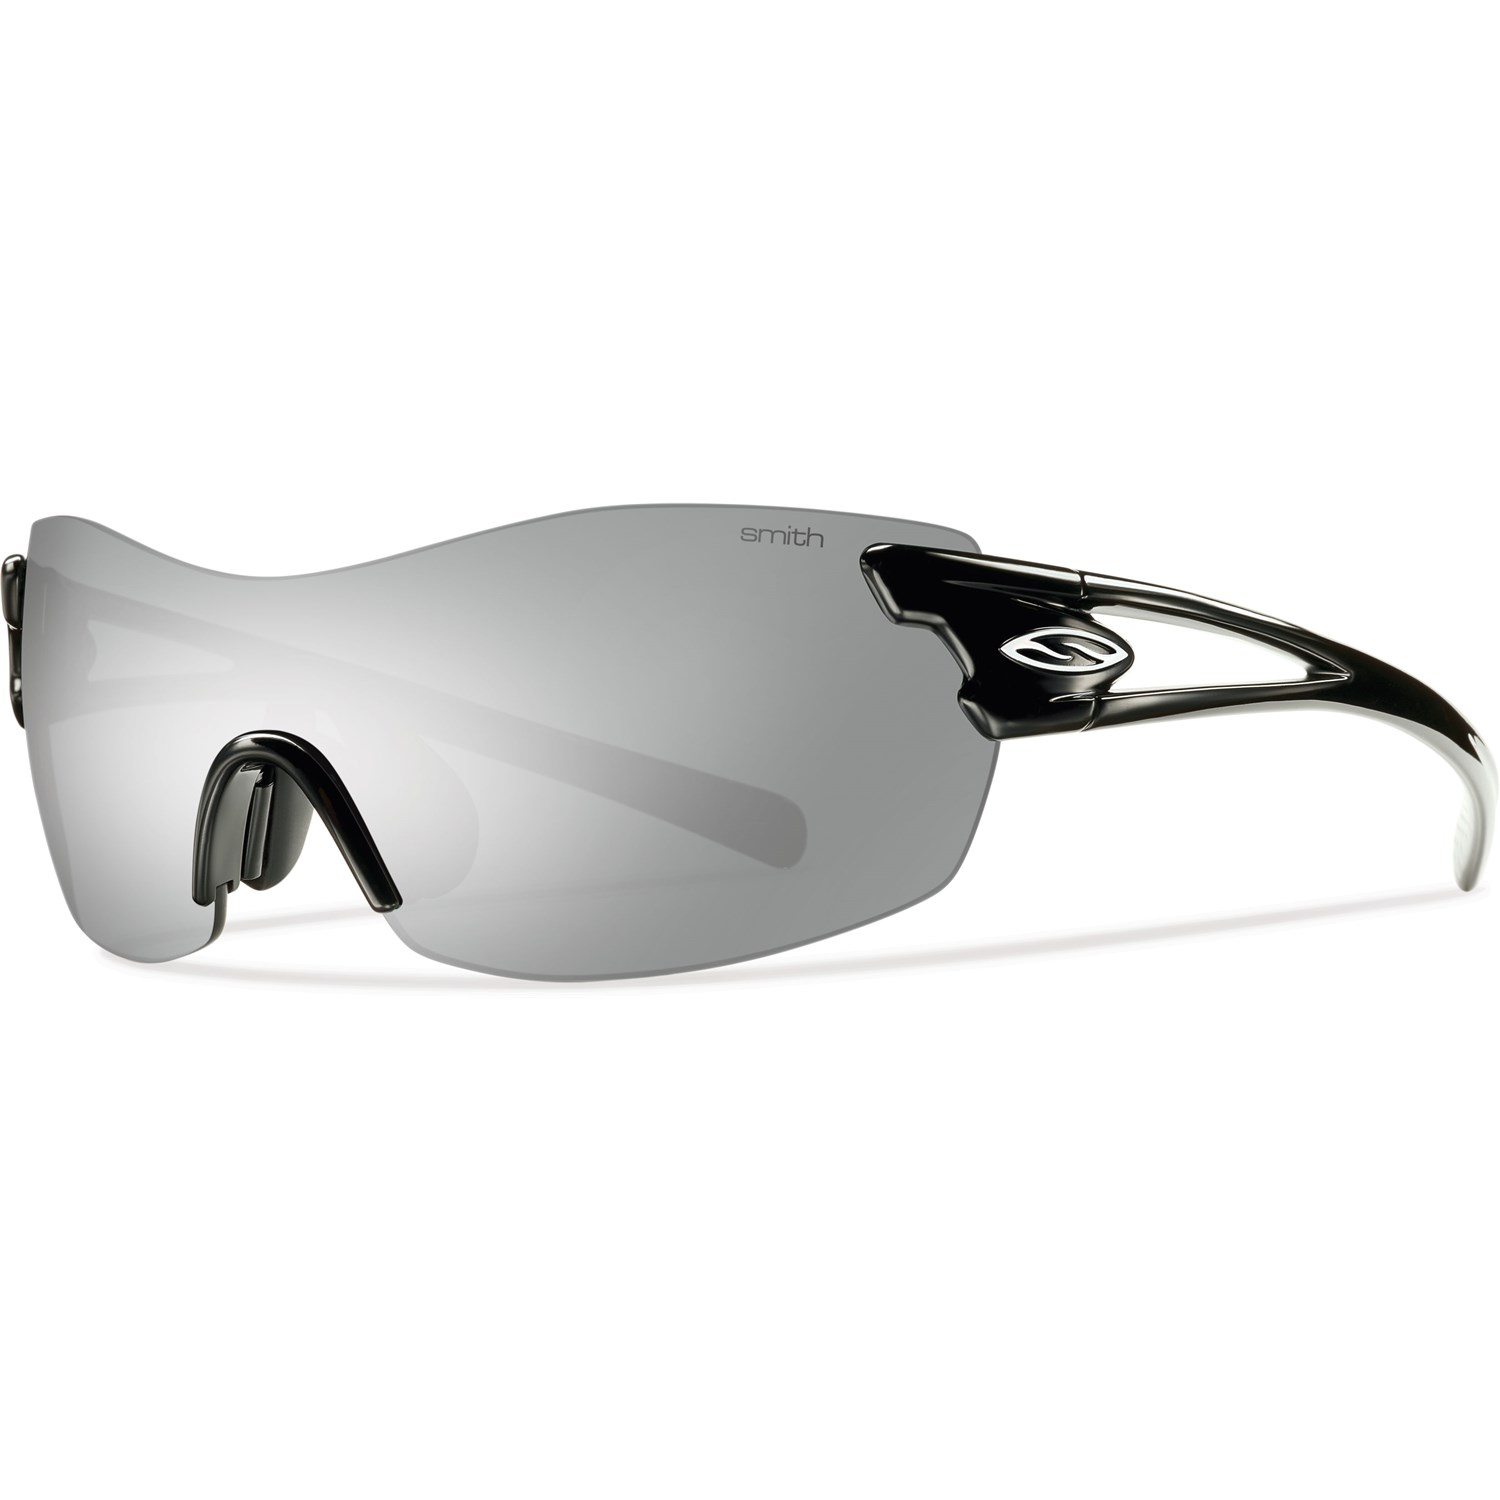 d3386f0b34 Smith Pivlock Asana Sunglasses